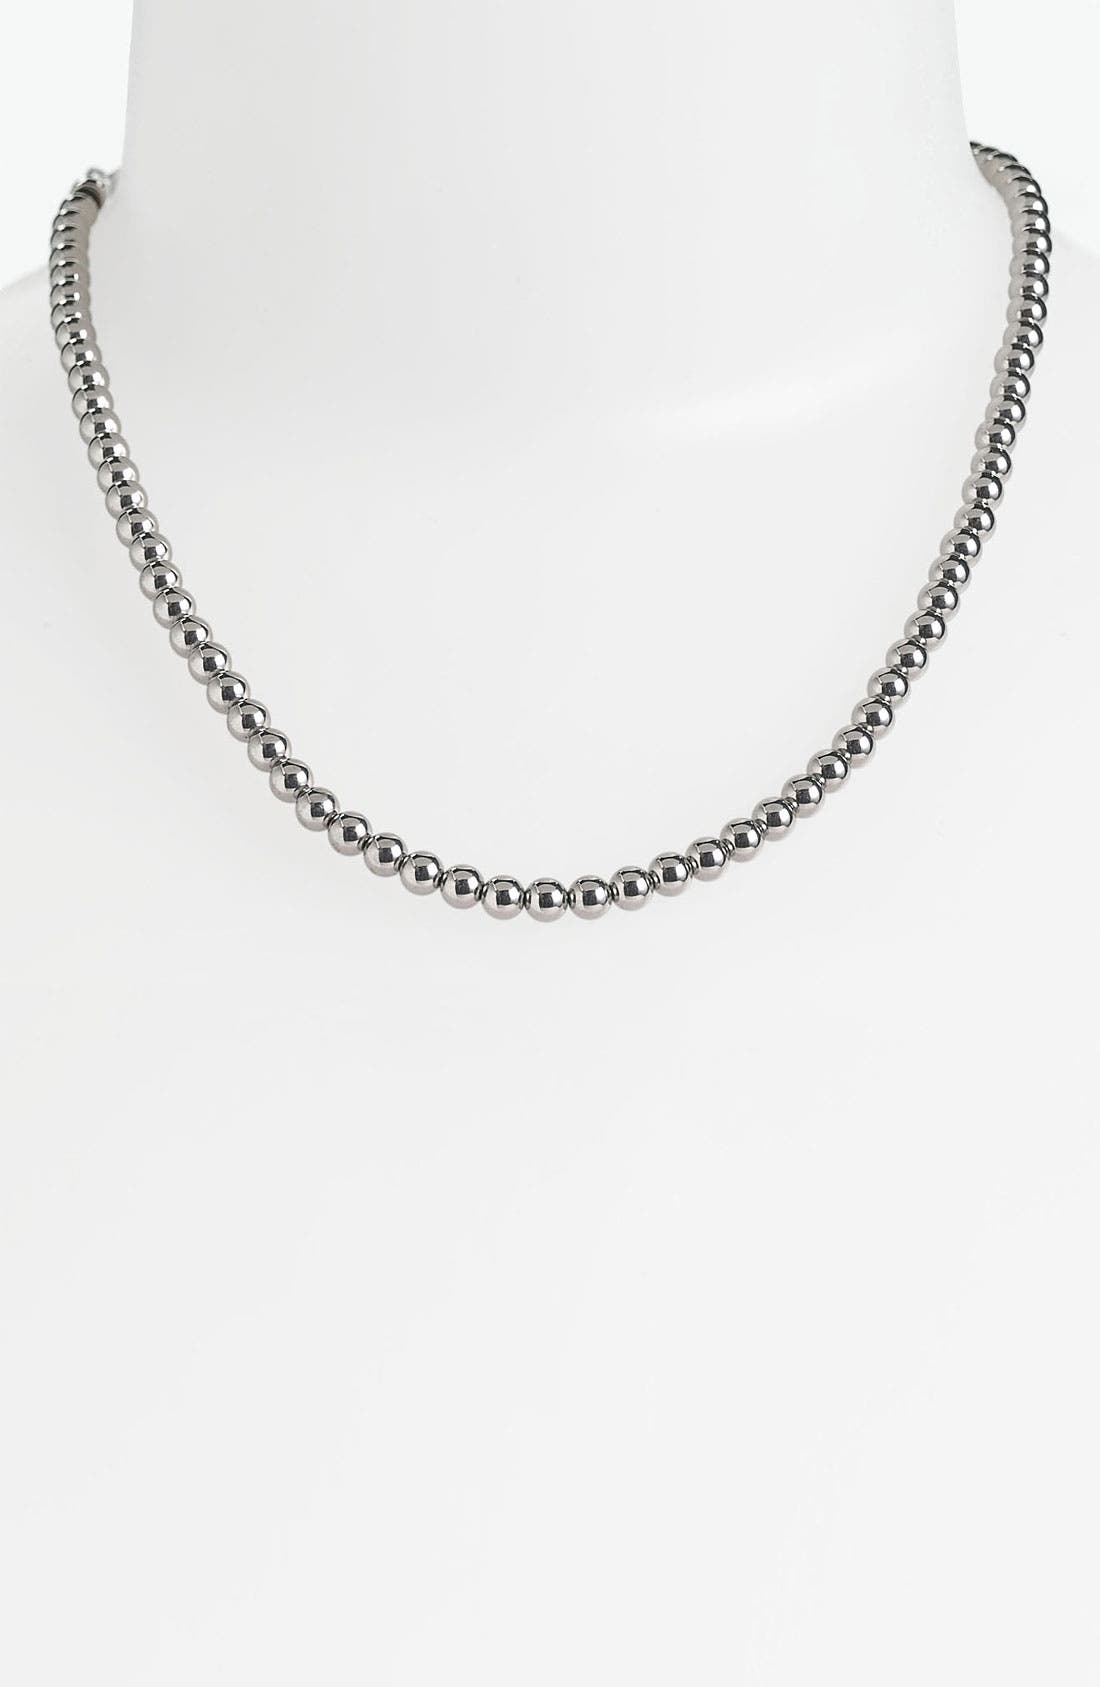 Alternate Image 1 Selected - Michael Kors 'Classics' Beaded Necklace